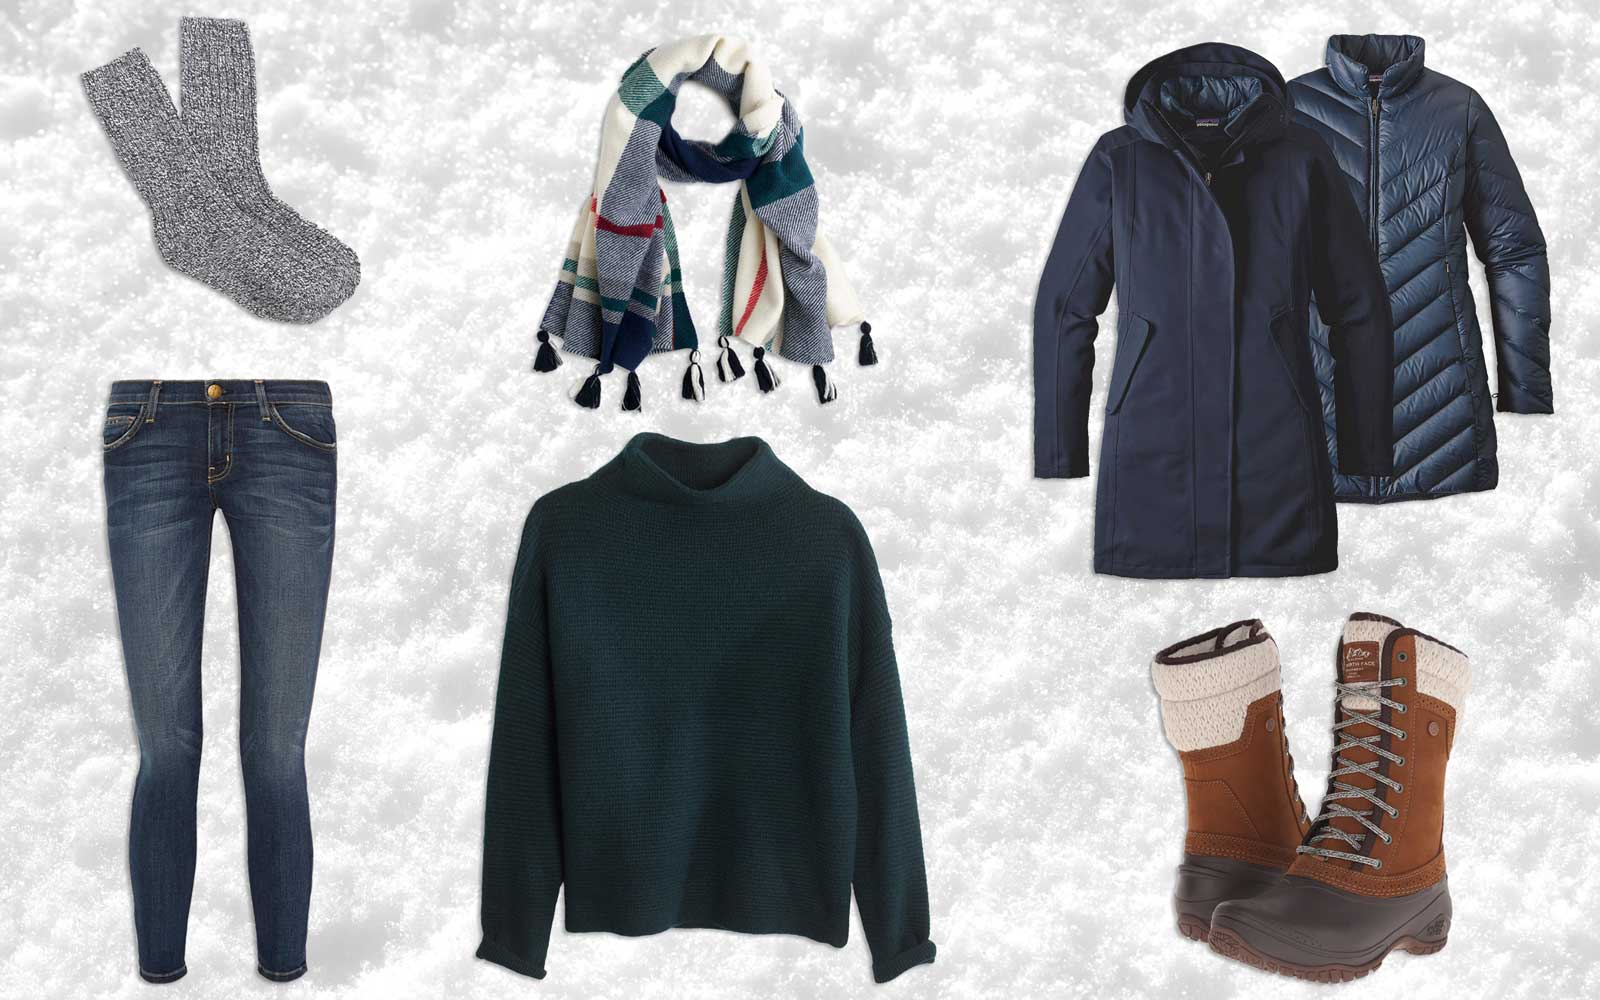 af59301f9 Stylish Winter Travel Outfits